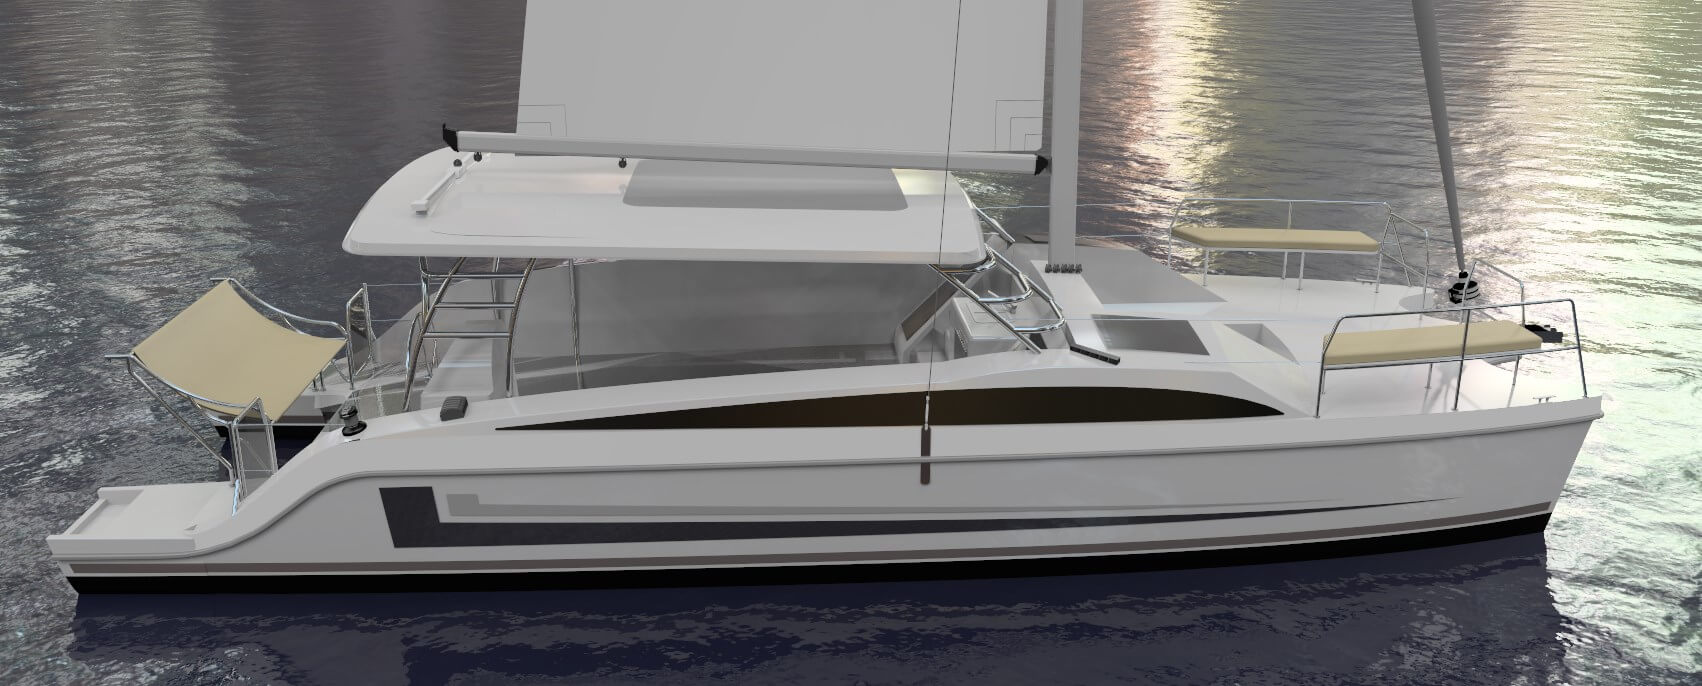 New Sail Catamarans for Sale  Freestyle 37 Boat Highlights